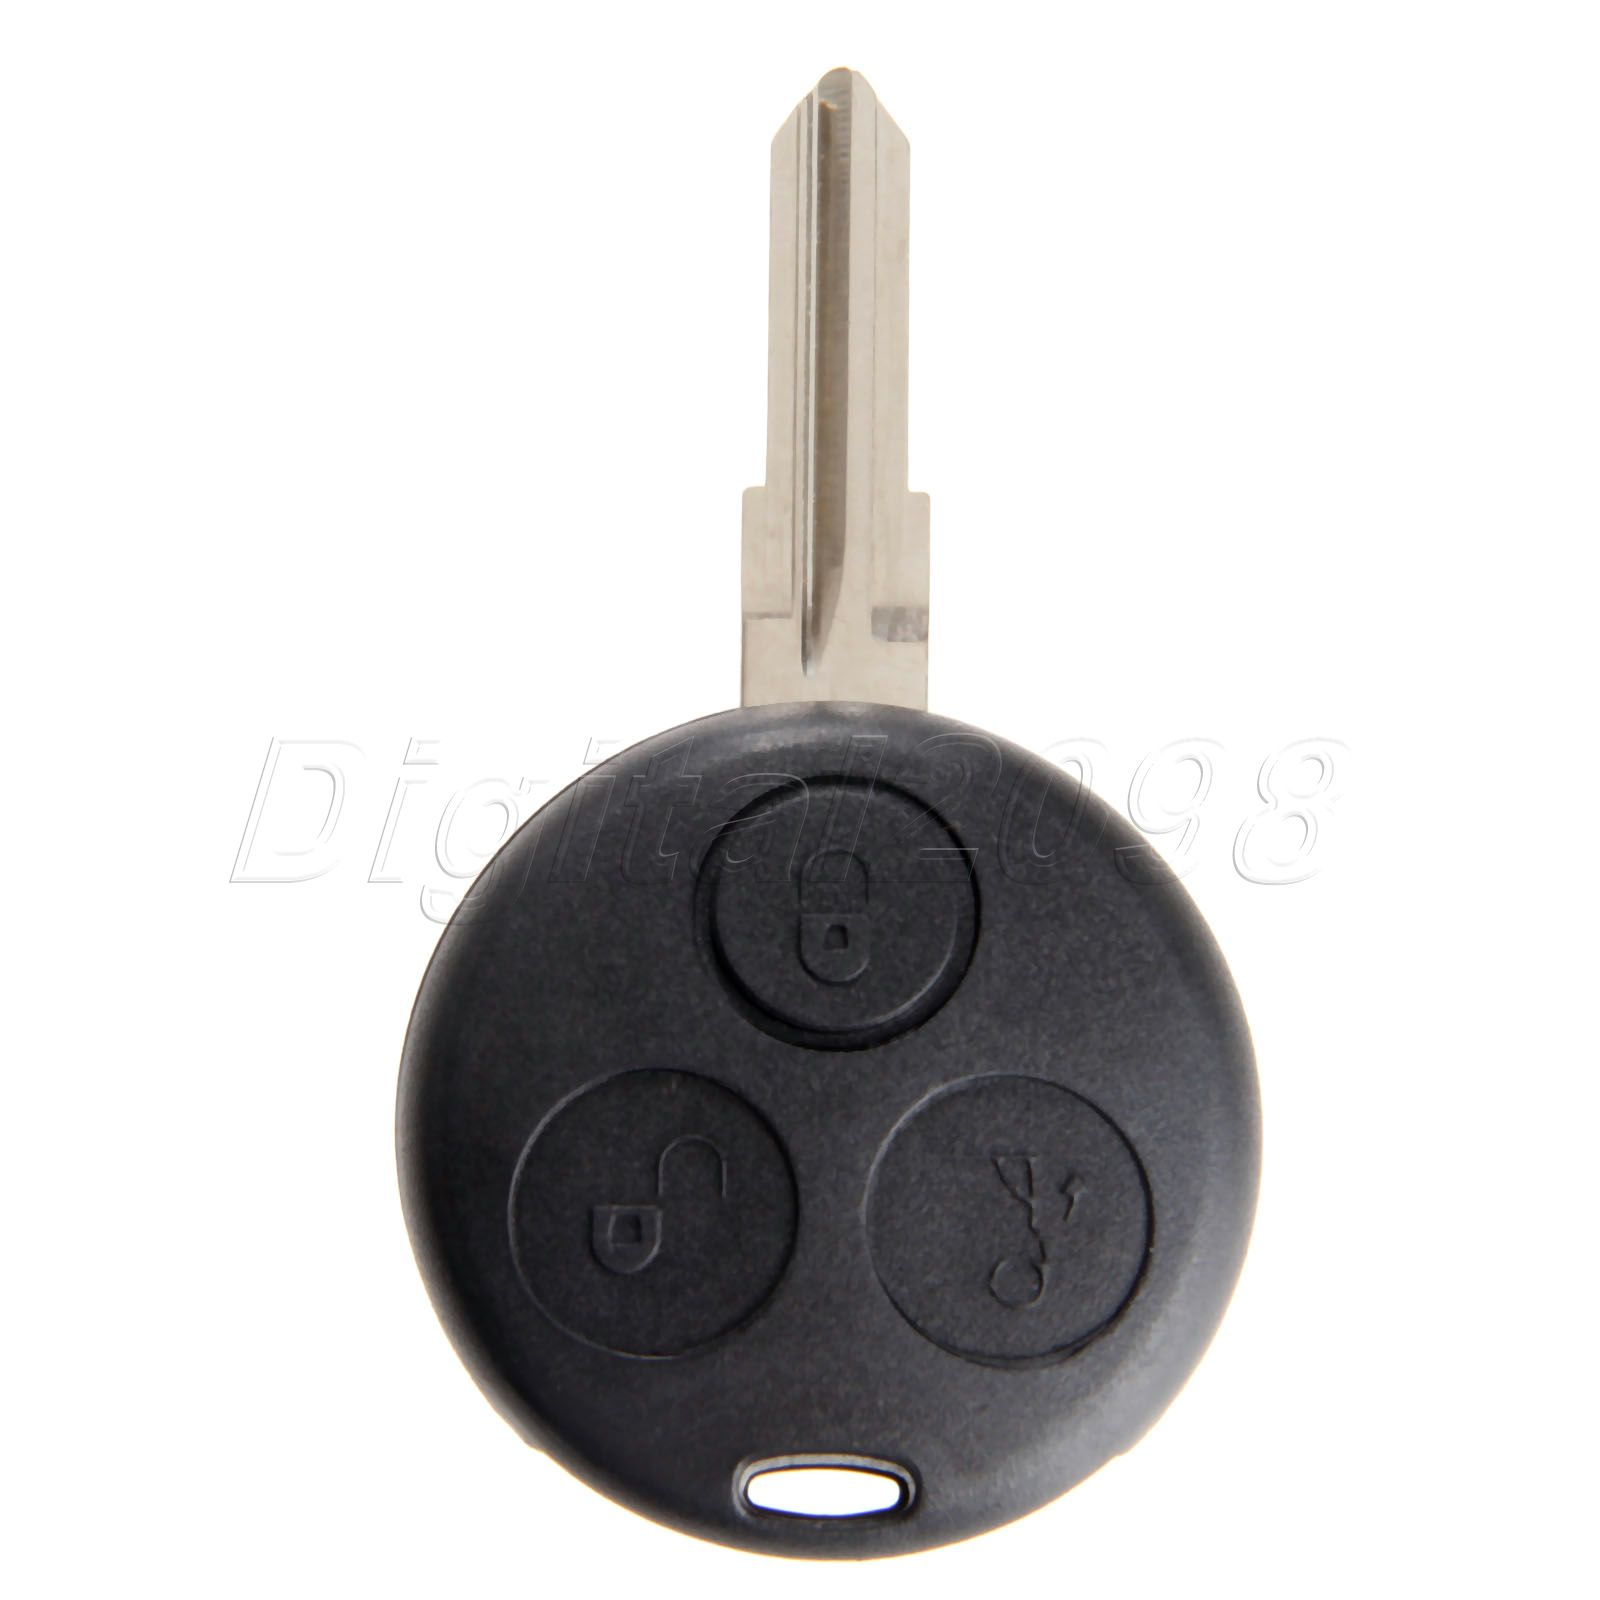 Yetaha 3 Buttons Remote Car <font><b>Key</b></font> Shell Fob Case Auto Replacement <font><b>Key</b></font> For Mercedes-Benz <font><b>Smart</b></font> ForTwo <font><b>450</b></font> Car-covers image